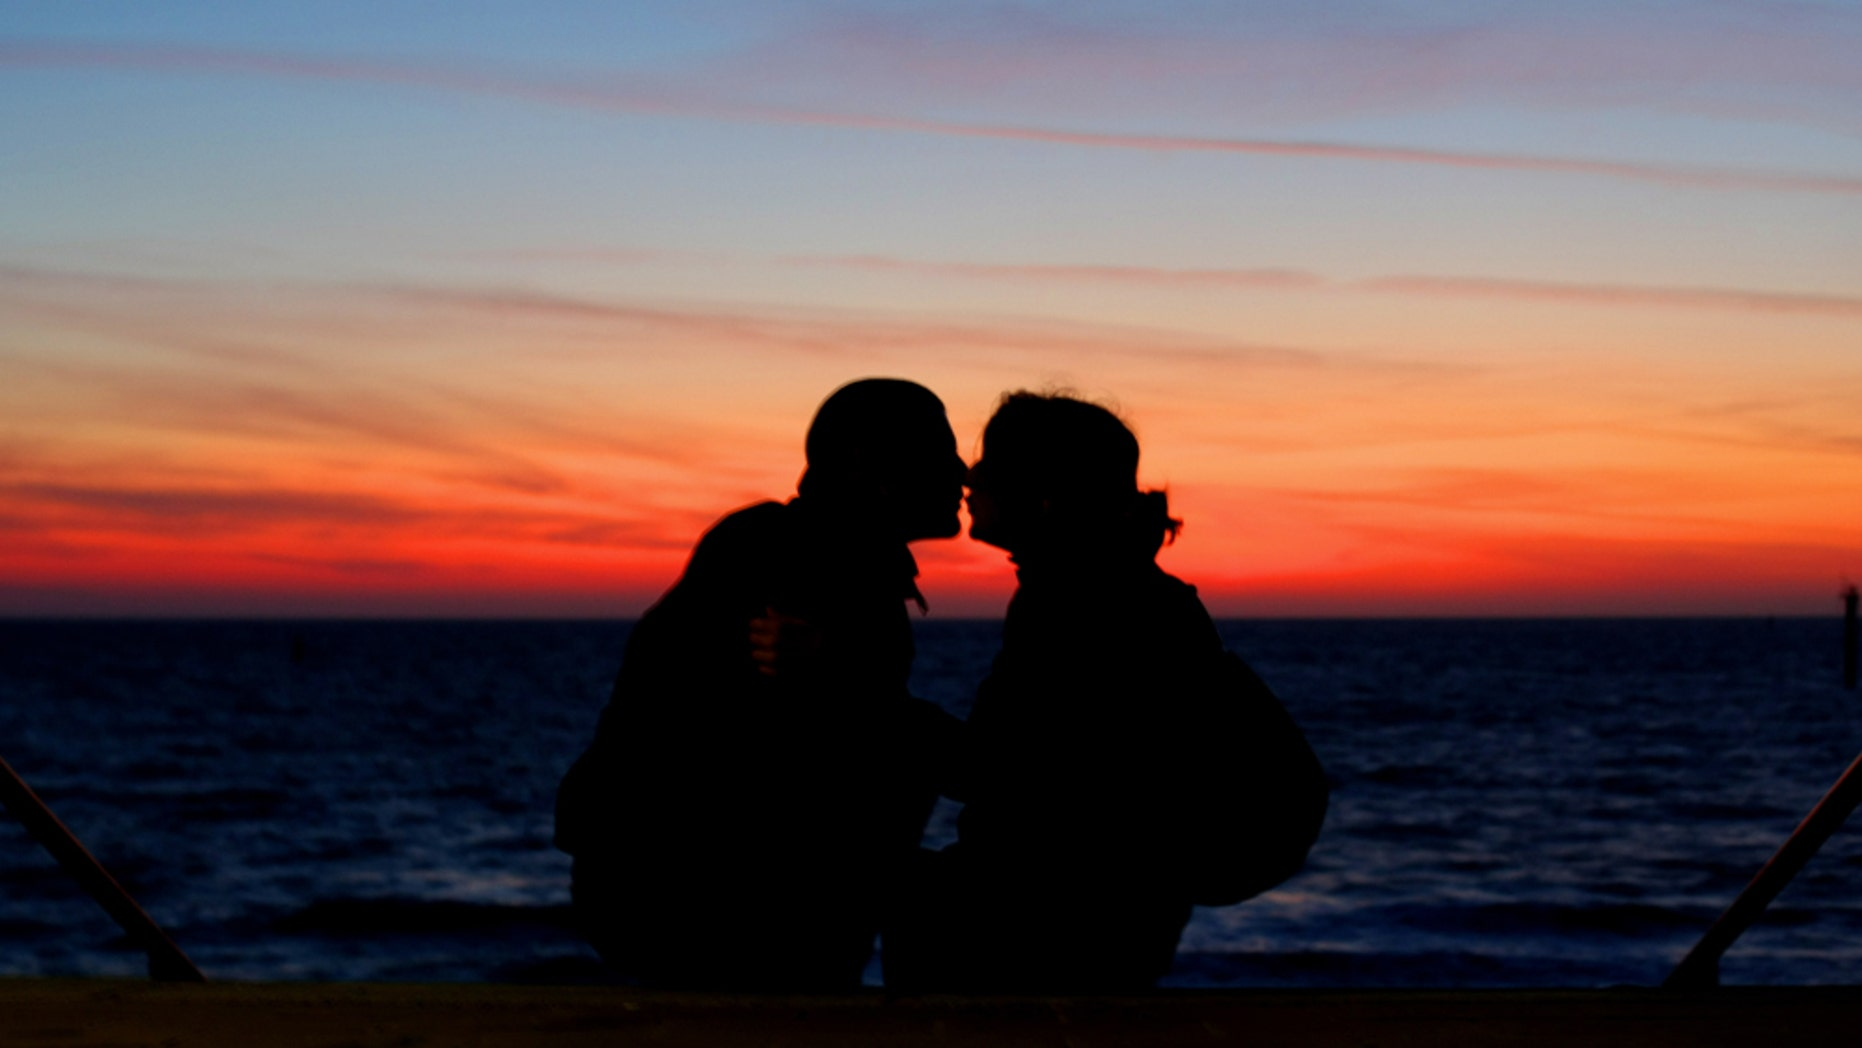 NORDERNEY, GERMANY - JULY 04:  A couple enjoys the sunset on July 4, 2009 in Norderney, Germany.  (Photo by Joern Pollex/Getty Images)